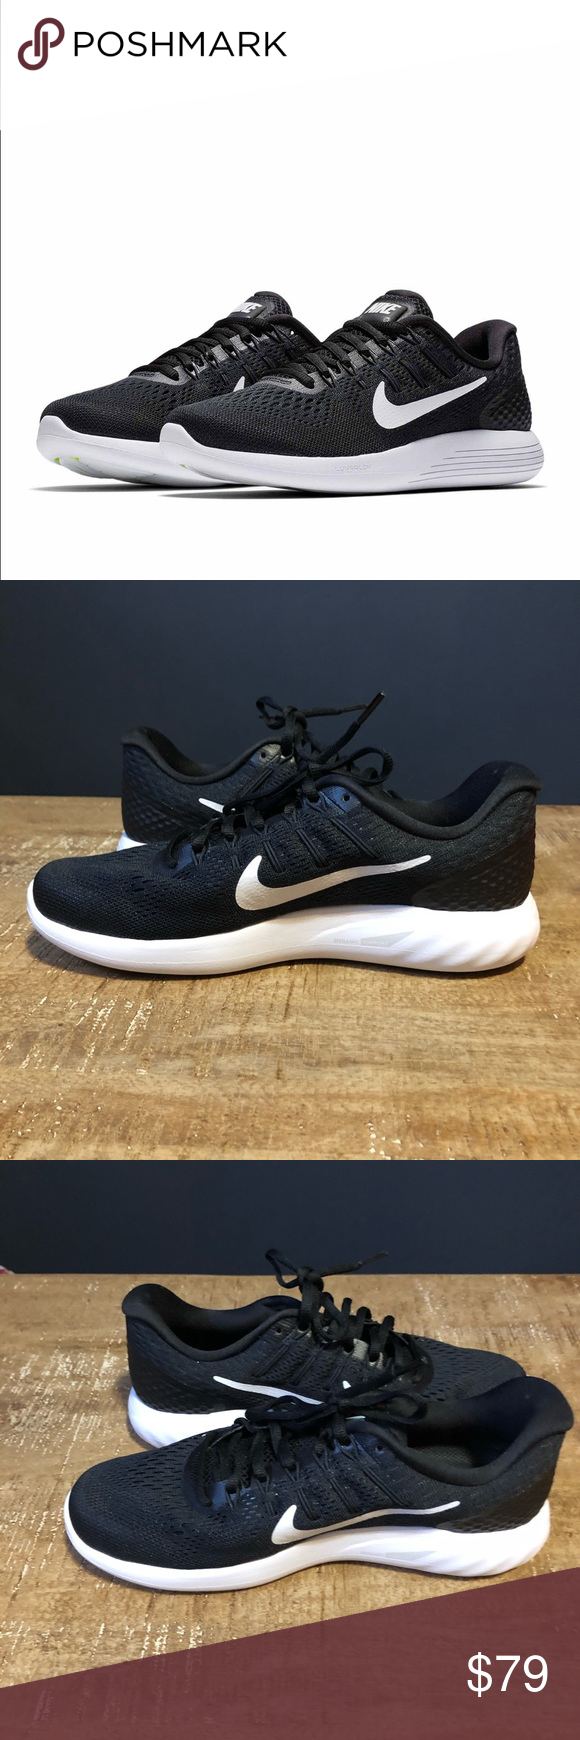 00a4a25434dc TODAY ONLY  60    NWT Nike Lunarglide 8 Shoes. NWT